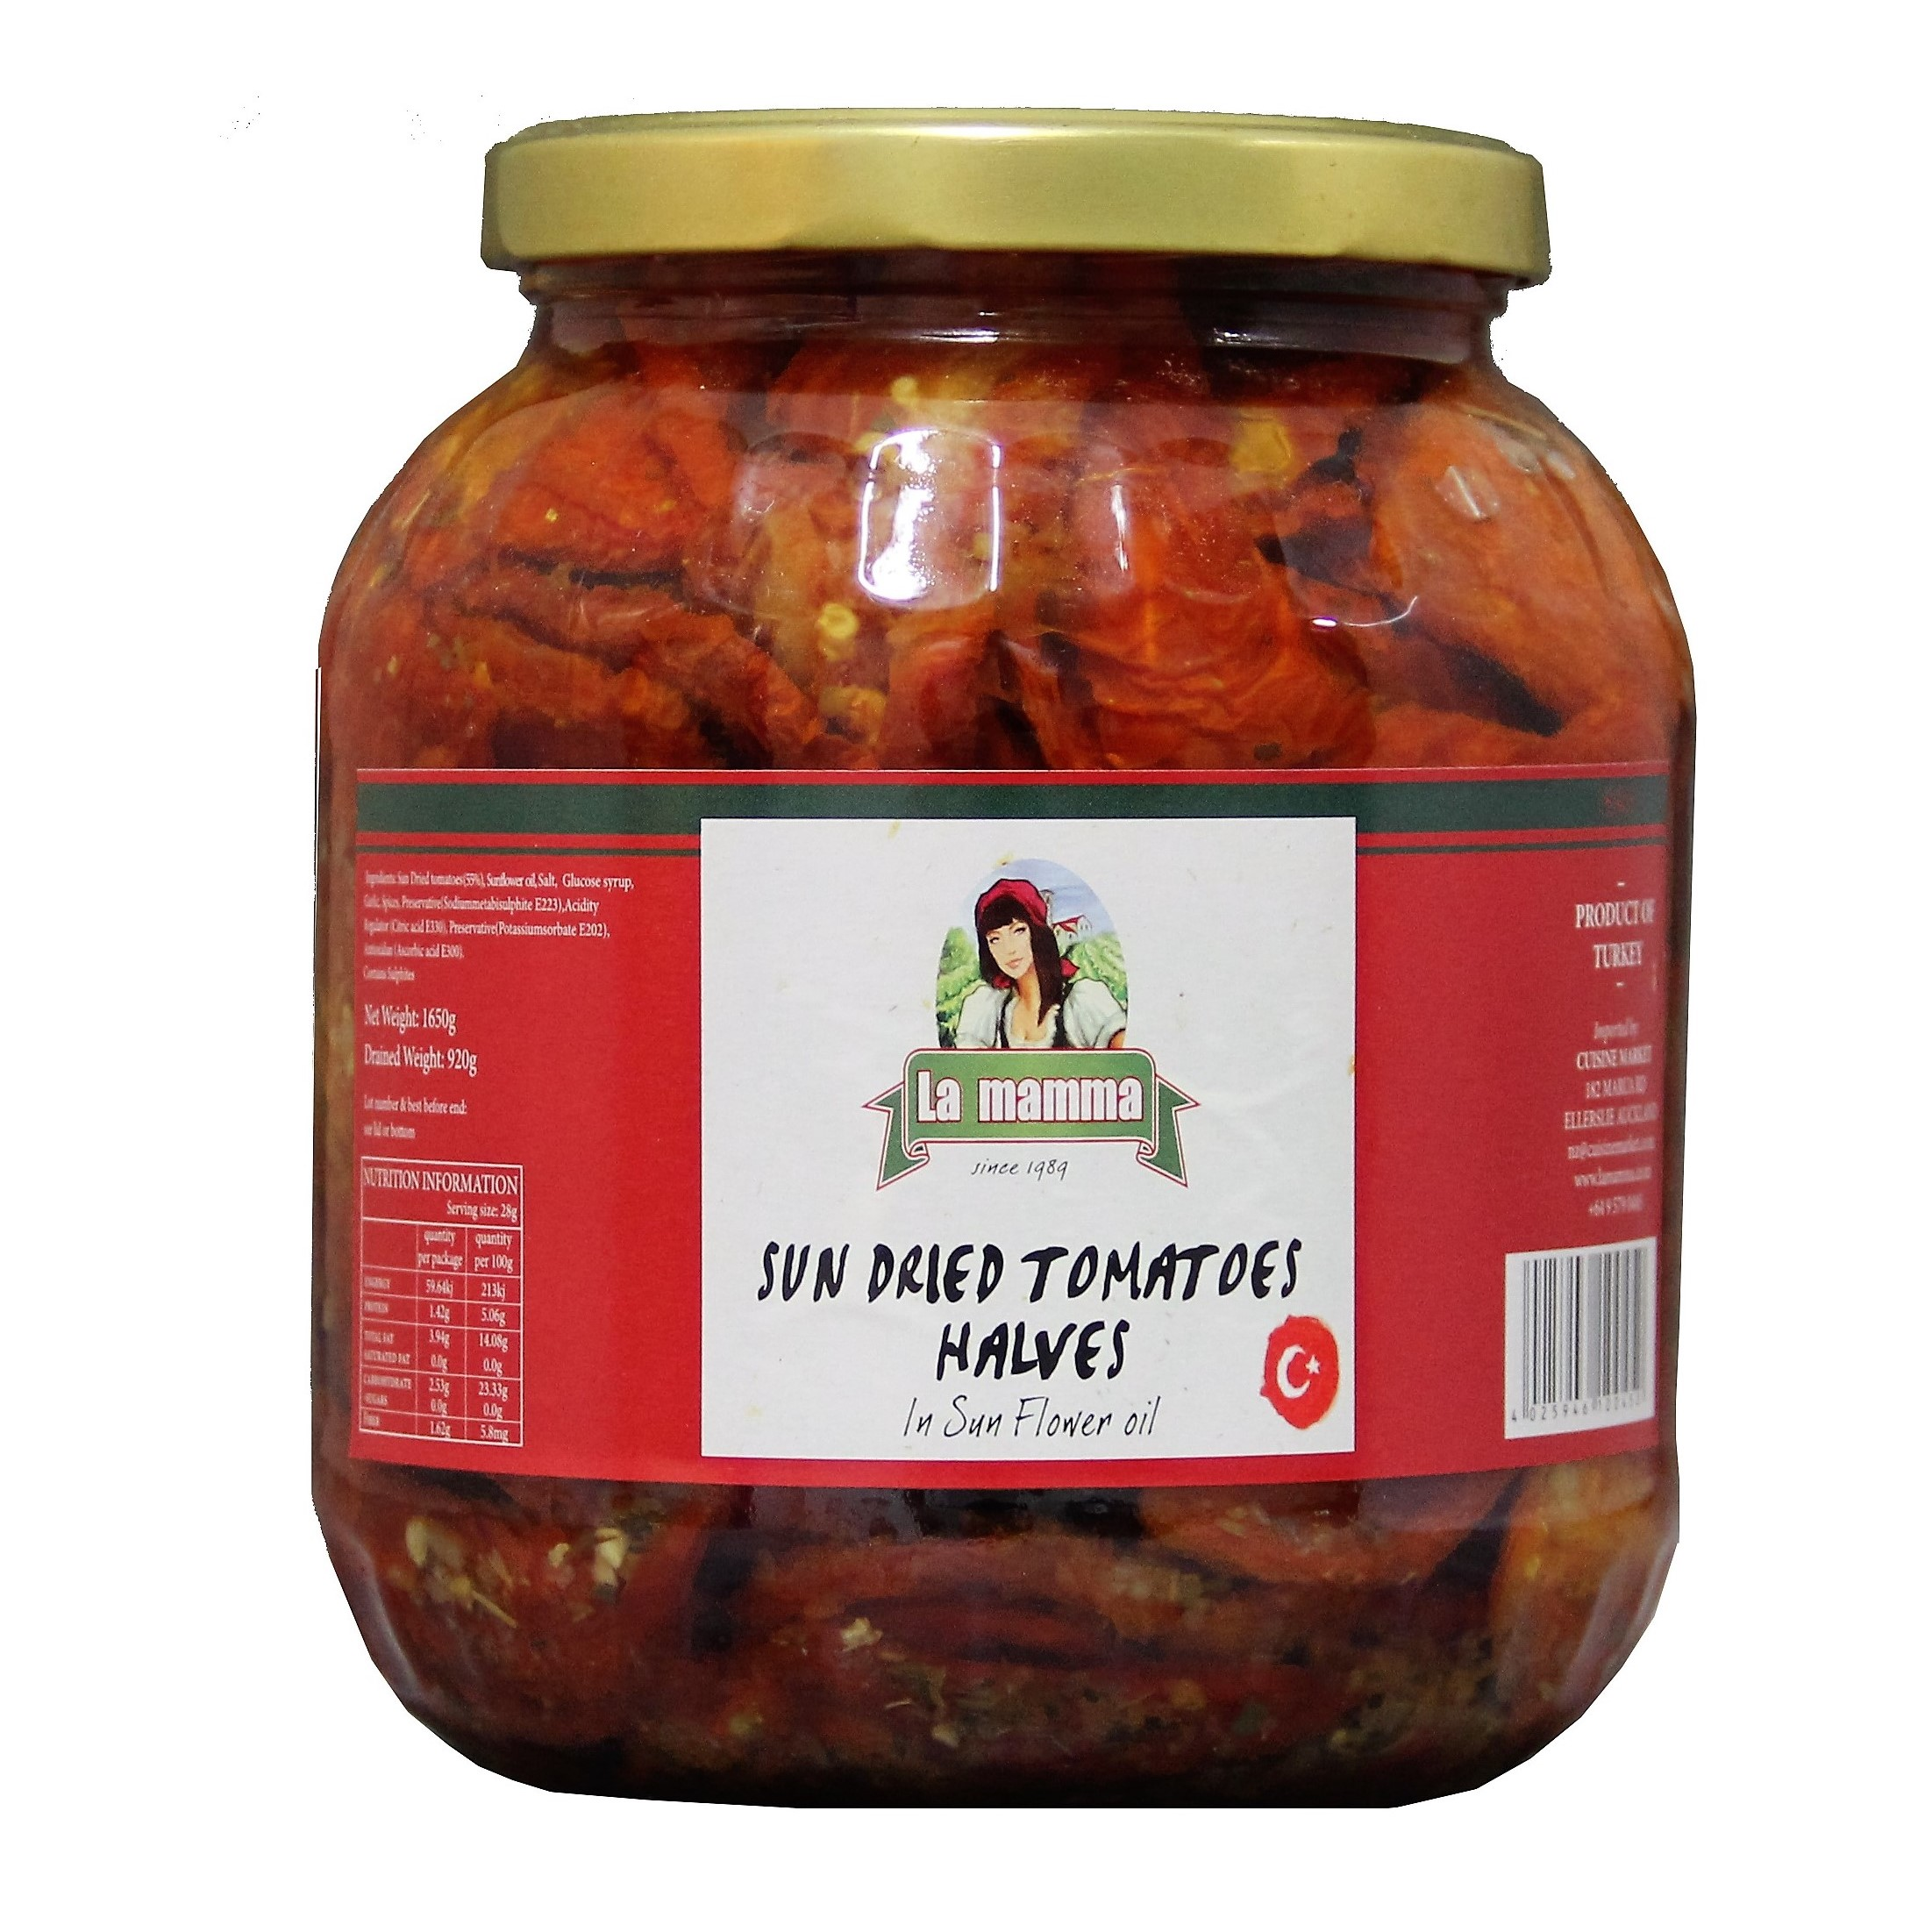 224 sun dried tomatoes in oil 1.7kg